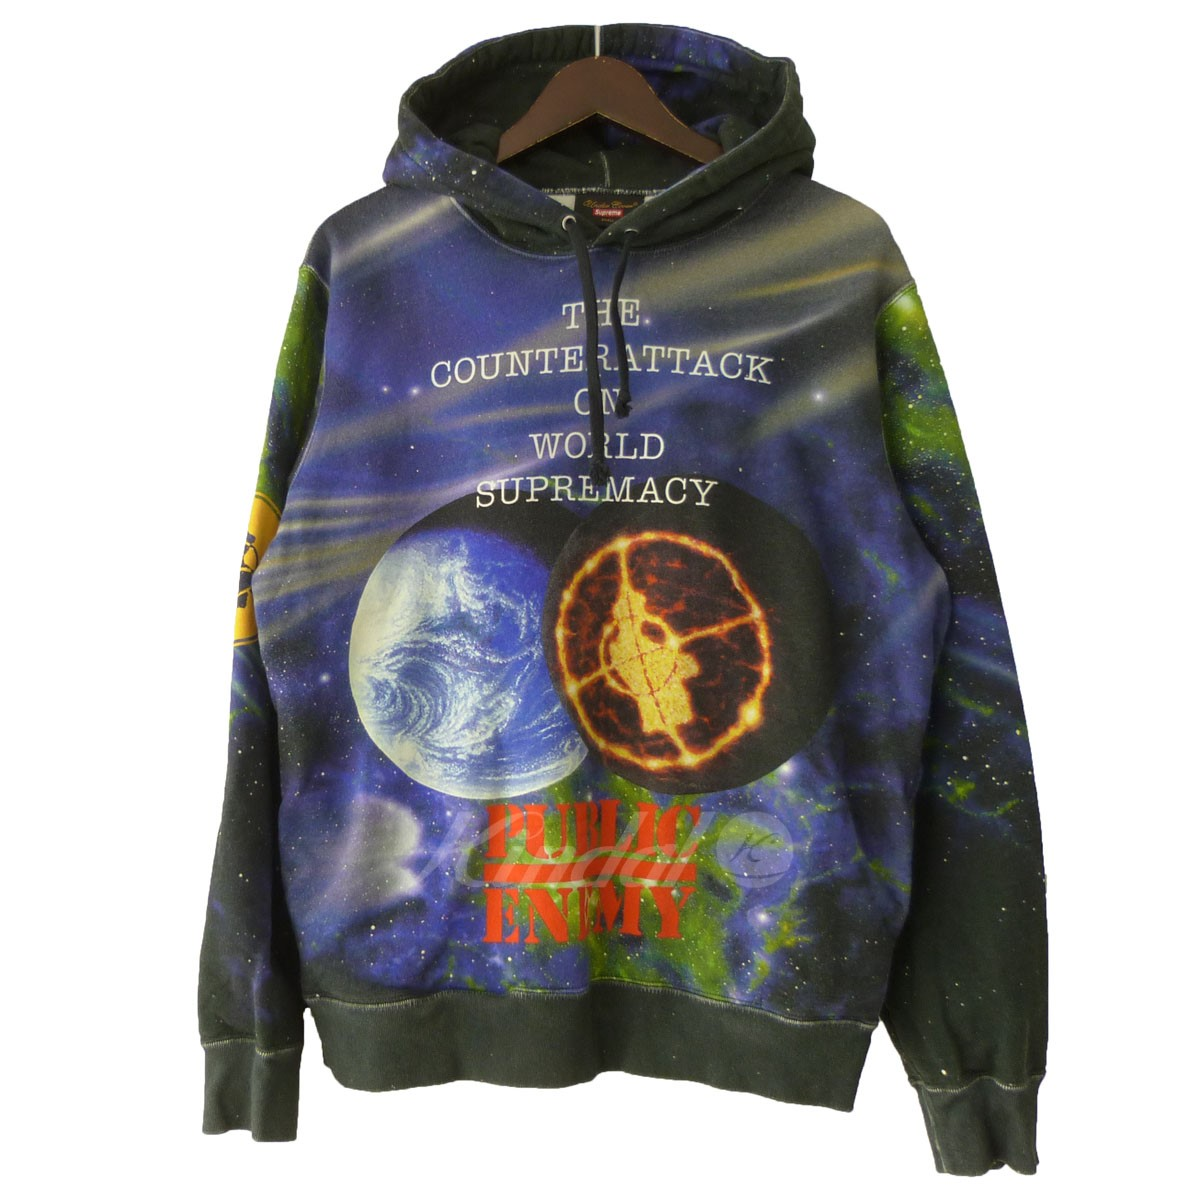 【中古】SUPREME ×UNDERCOVER 18SS「Public Enemy Hooded Sweatshirt」プルオーバーパーカー 【送料無料】 【156509】 【KIND1550】